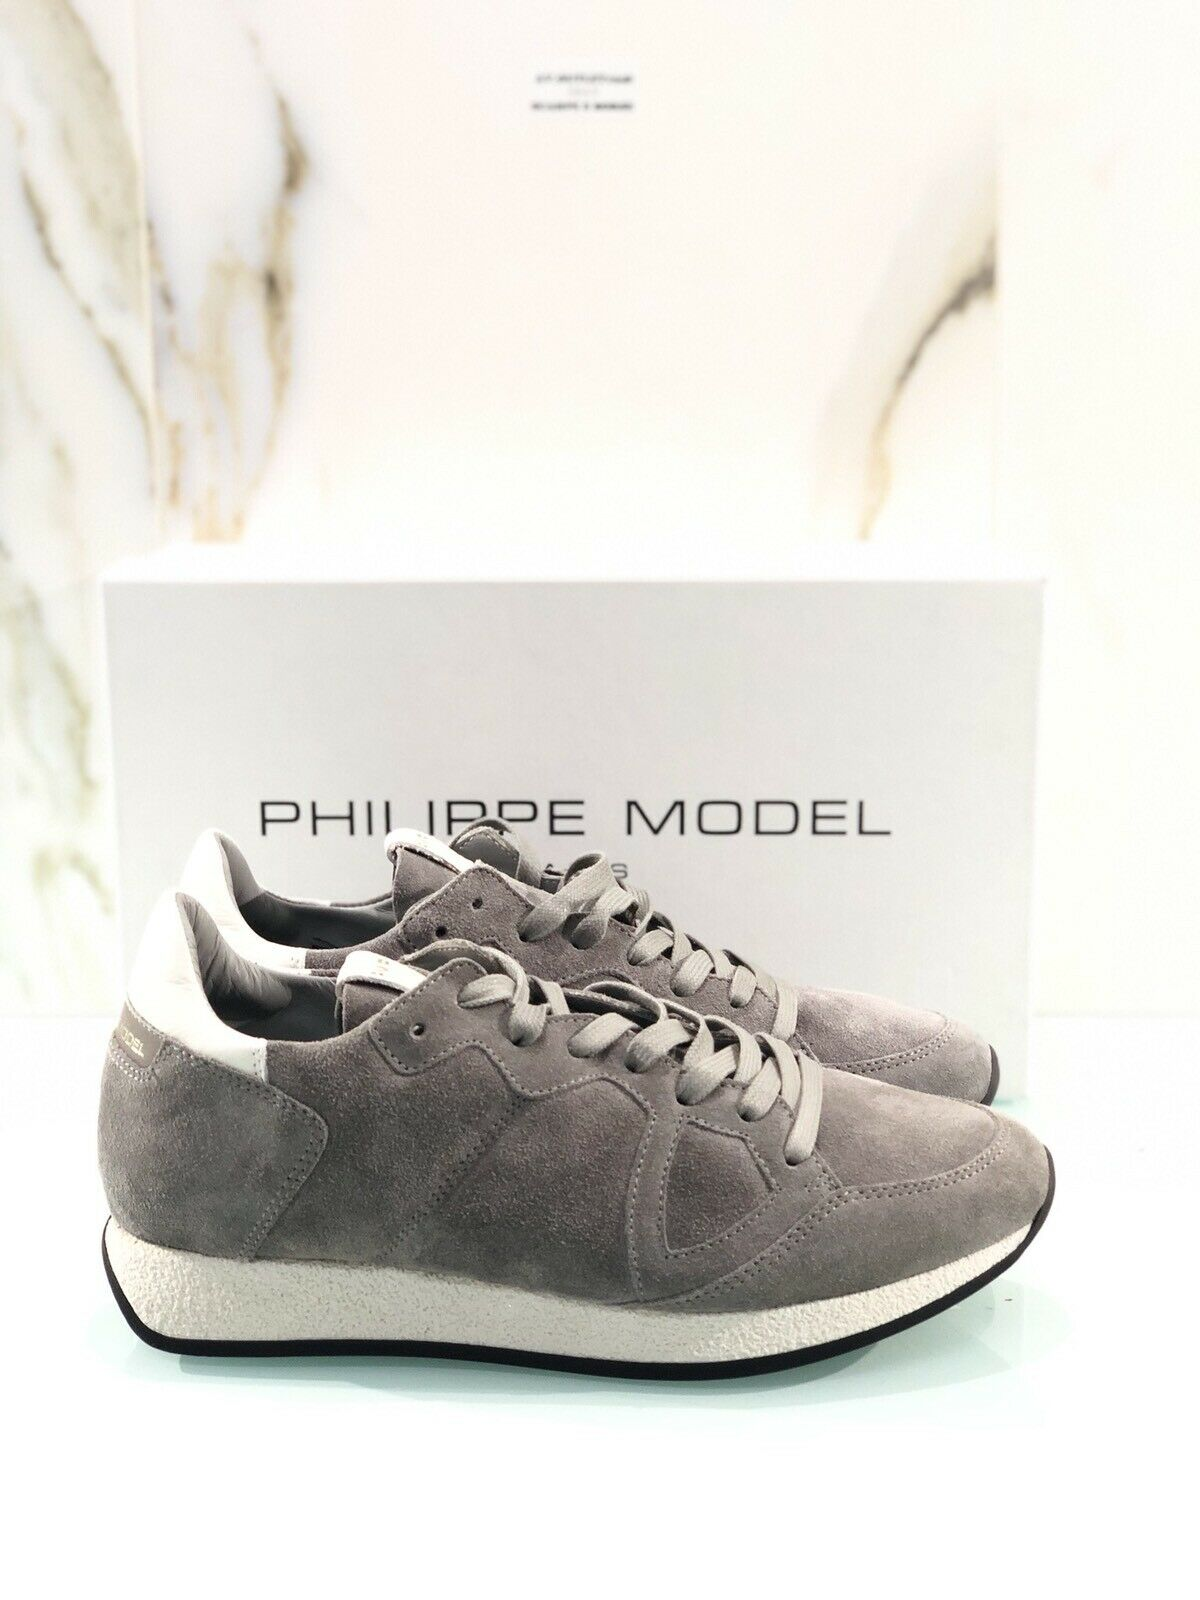 Philippe Model Monaco L U Daim Sneaker Suede Grey Number 40 Luxury Sneaker